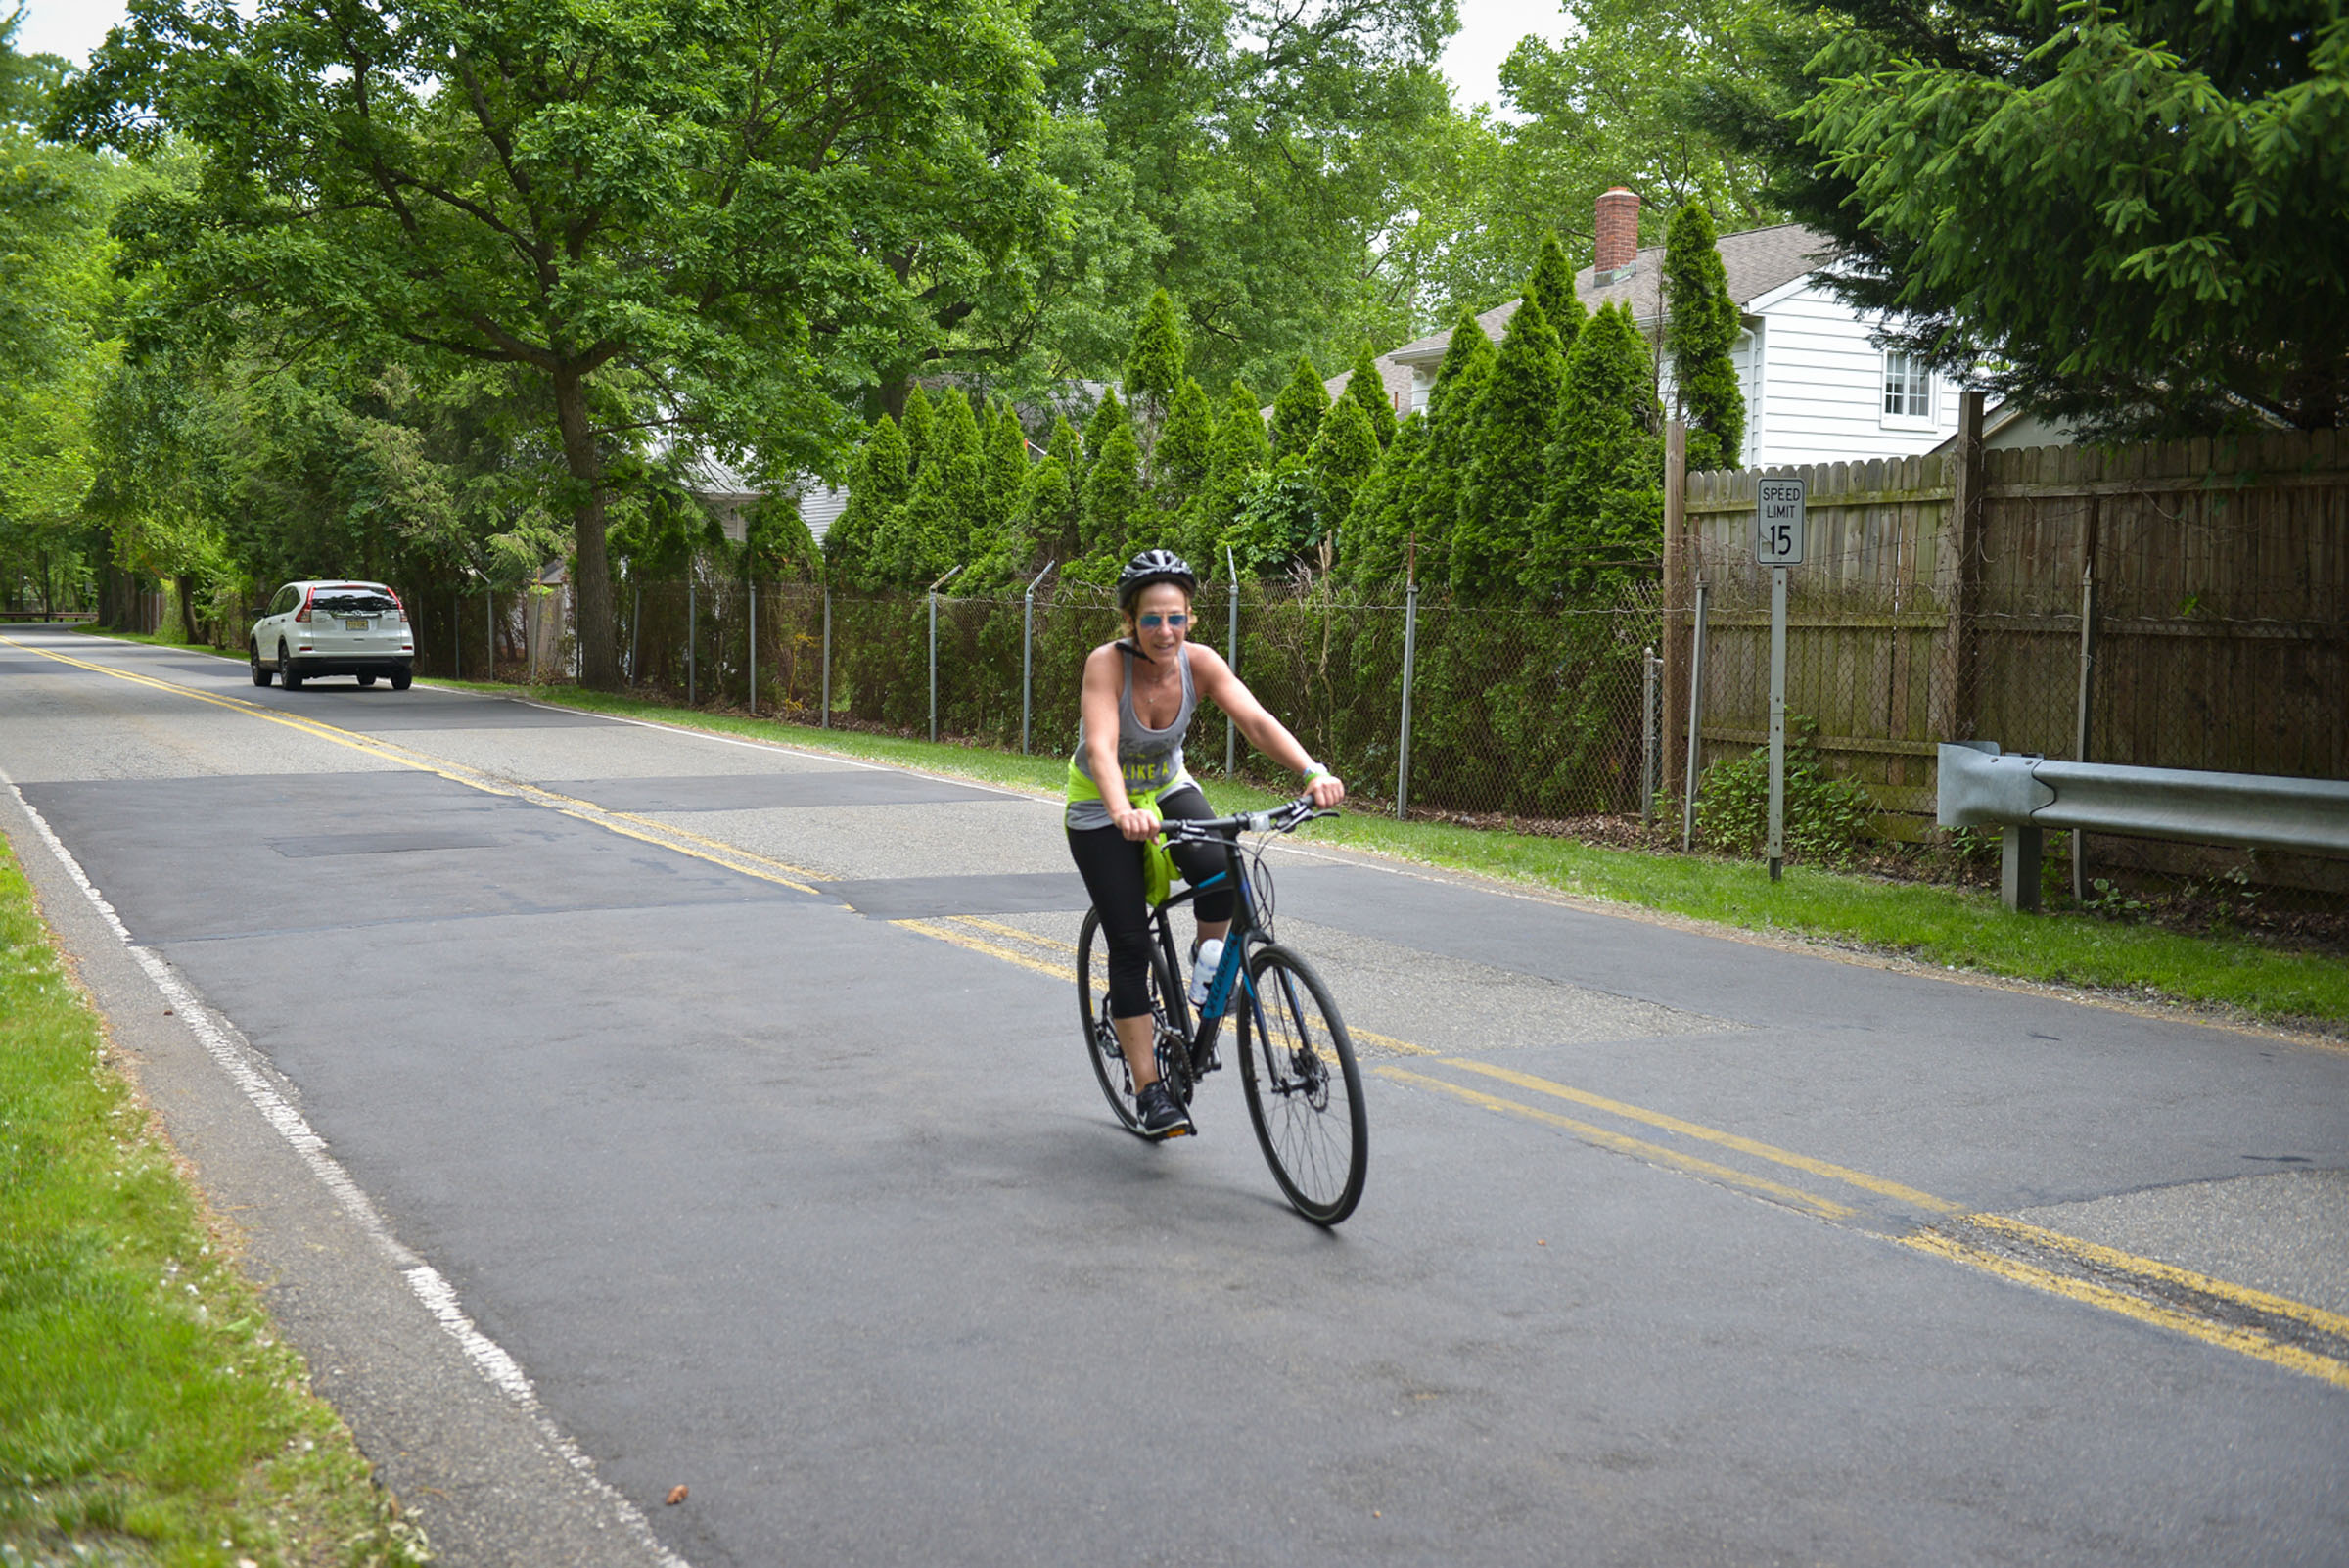 2017-06-04 GTD4A Charity Bike Ride - BCC - Paramus NJ-2395.jpg